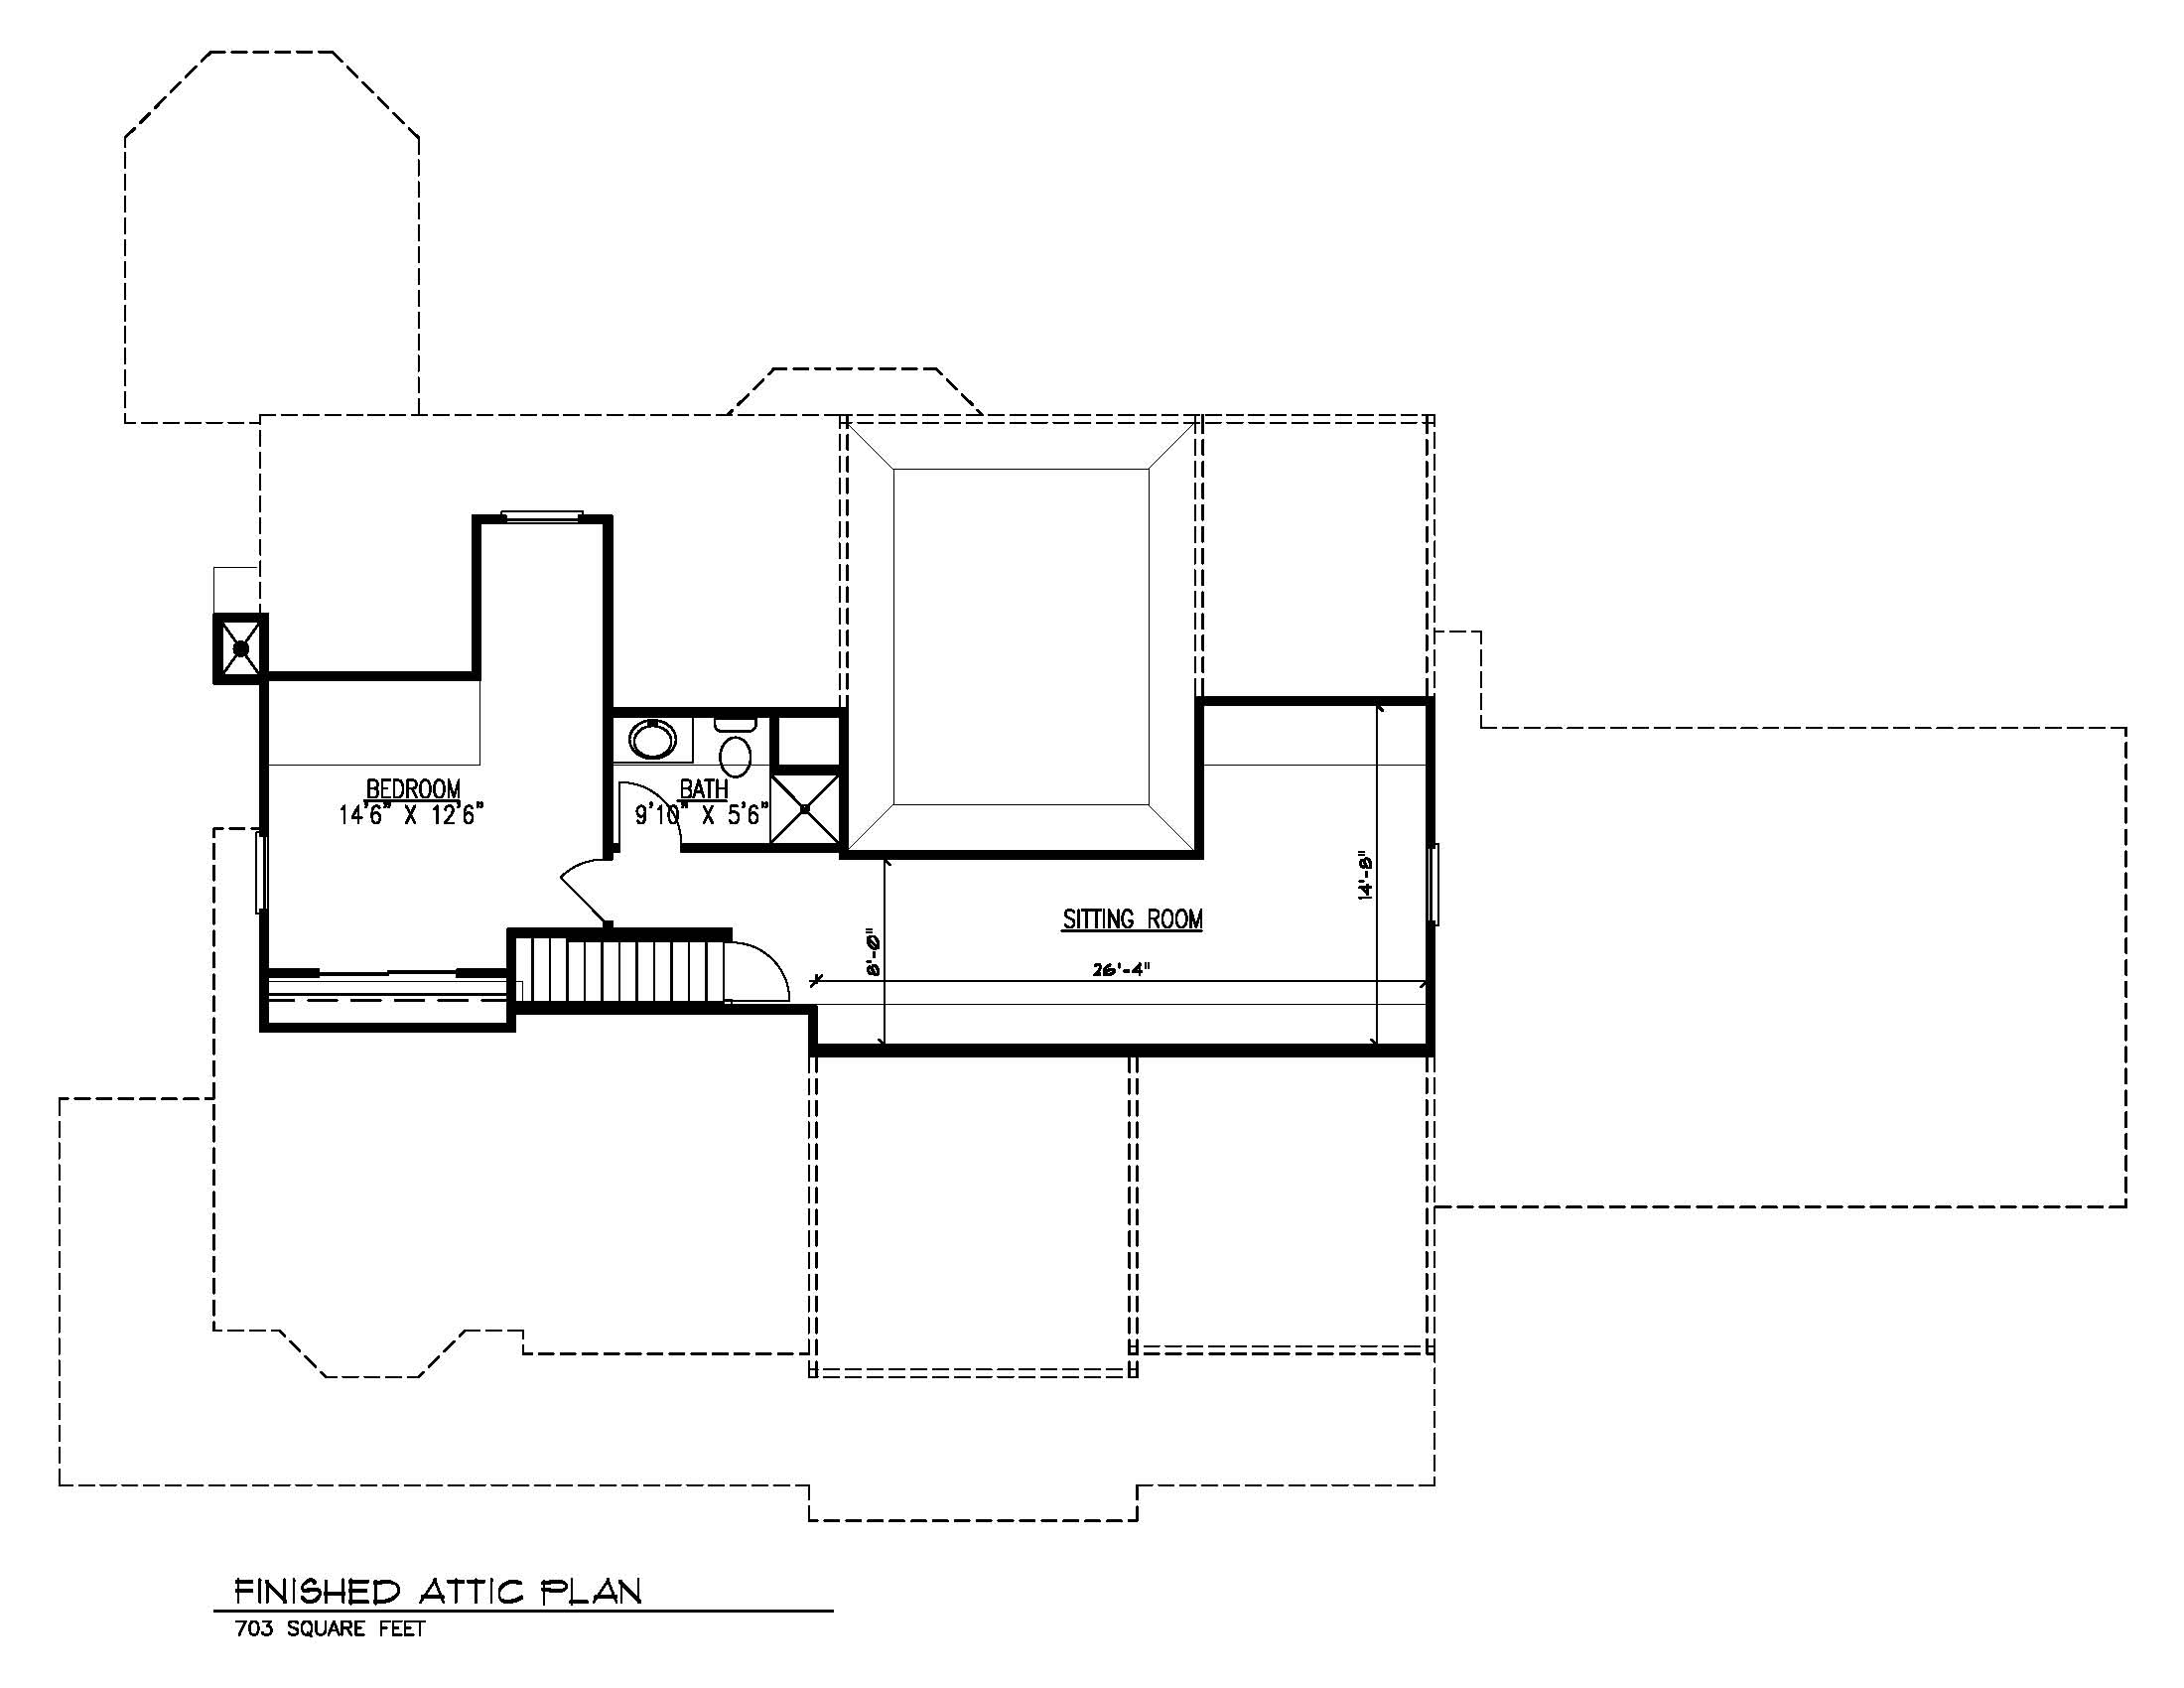 20 Barchester Attic Plan